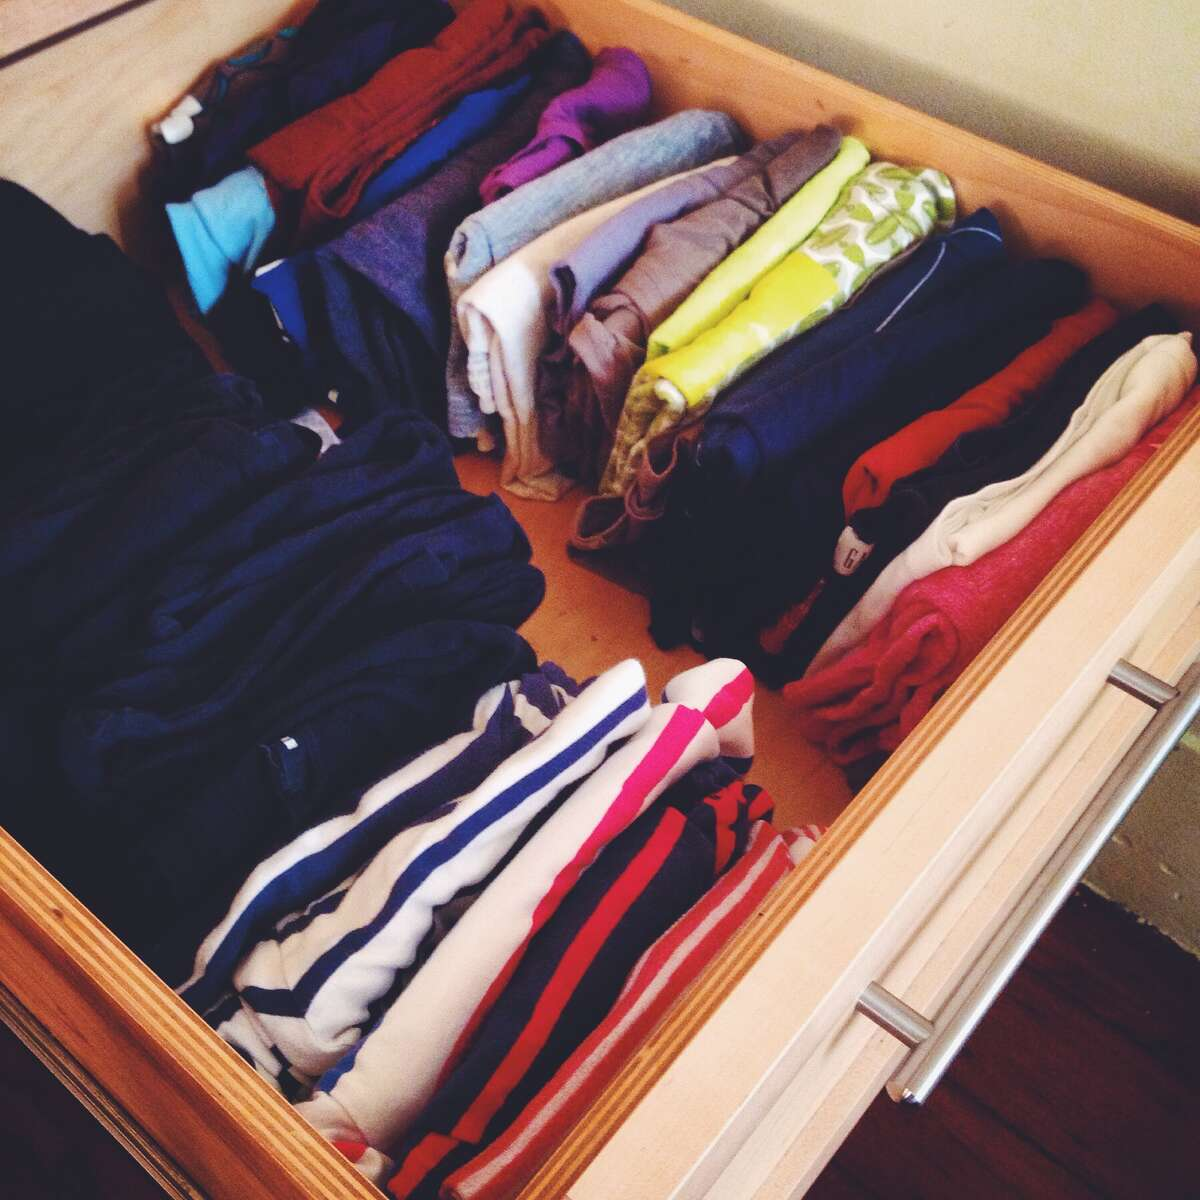 The Konmari T-shirt filing system works: more room, no wrinkles and I can see everything.